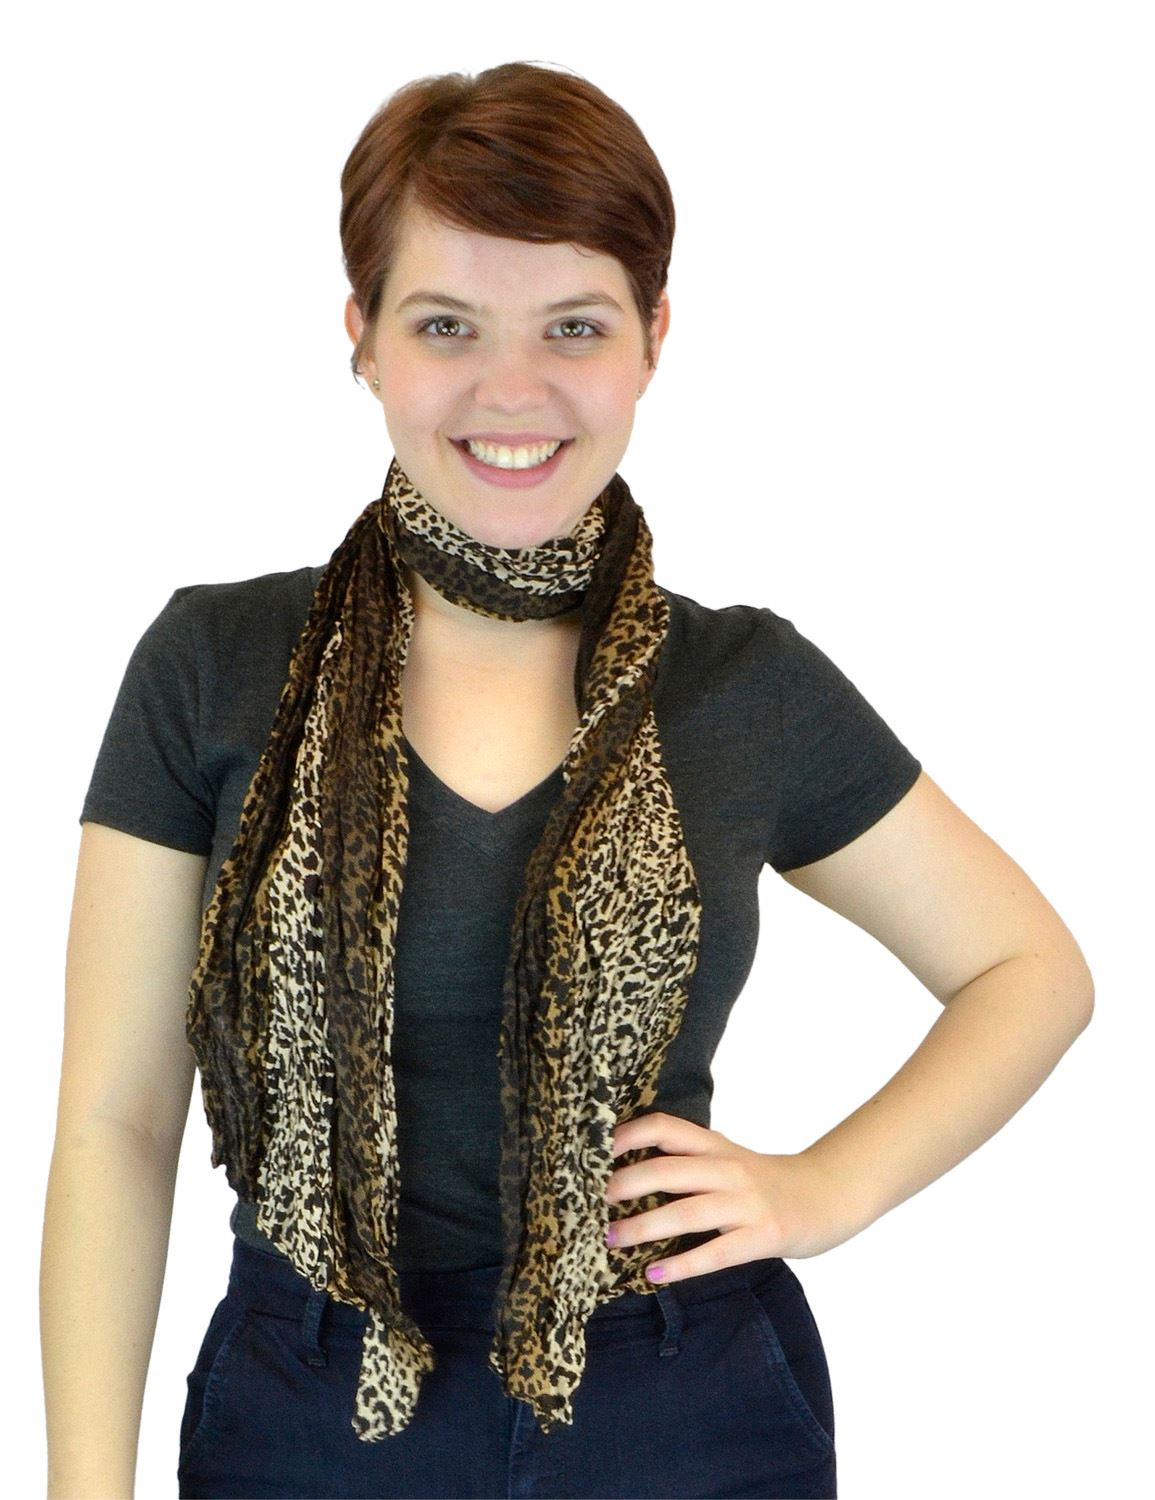 Belle Donne - Women's Leopard Pattern Sheer Polyester Scarf Formal Casual - Brown